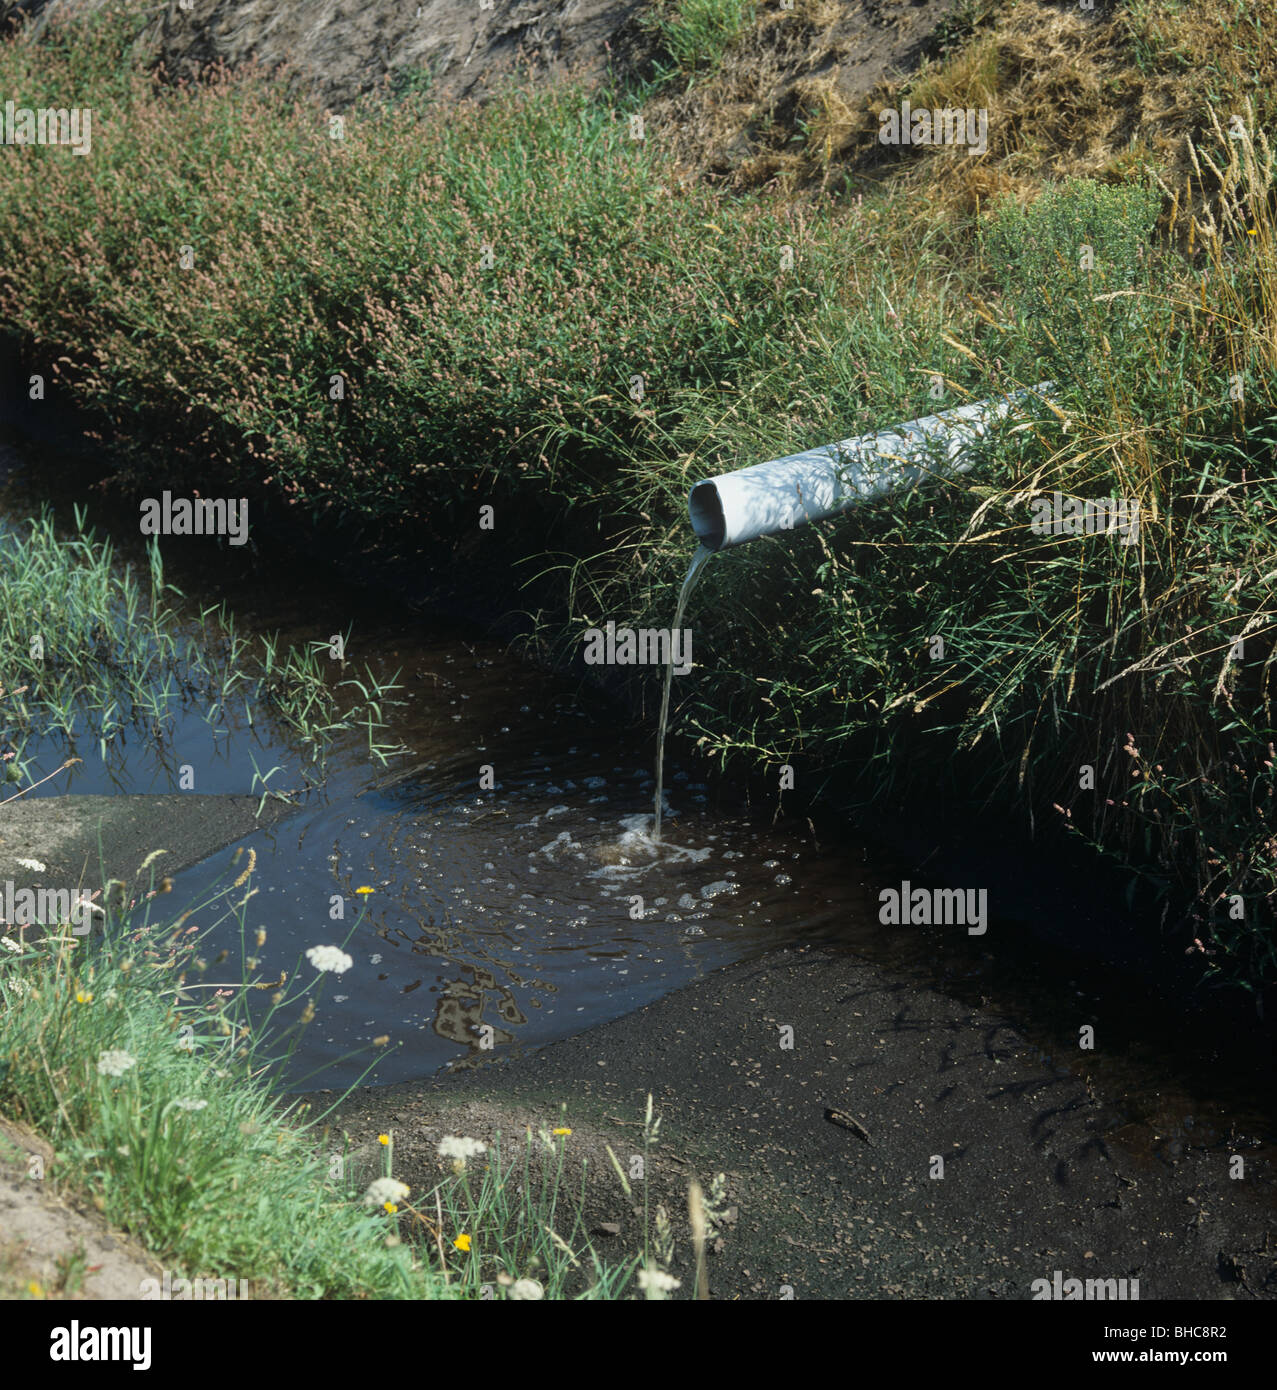 Drainage outlet into water course from farmland with irrigation, a source of water contamination - Stock Image